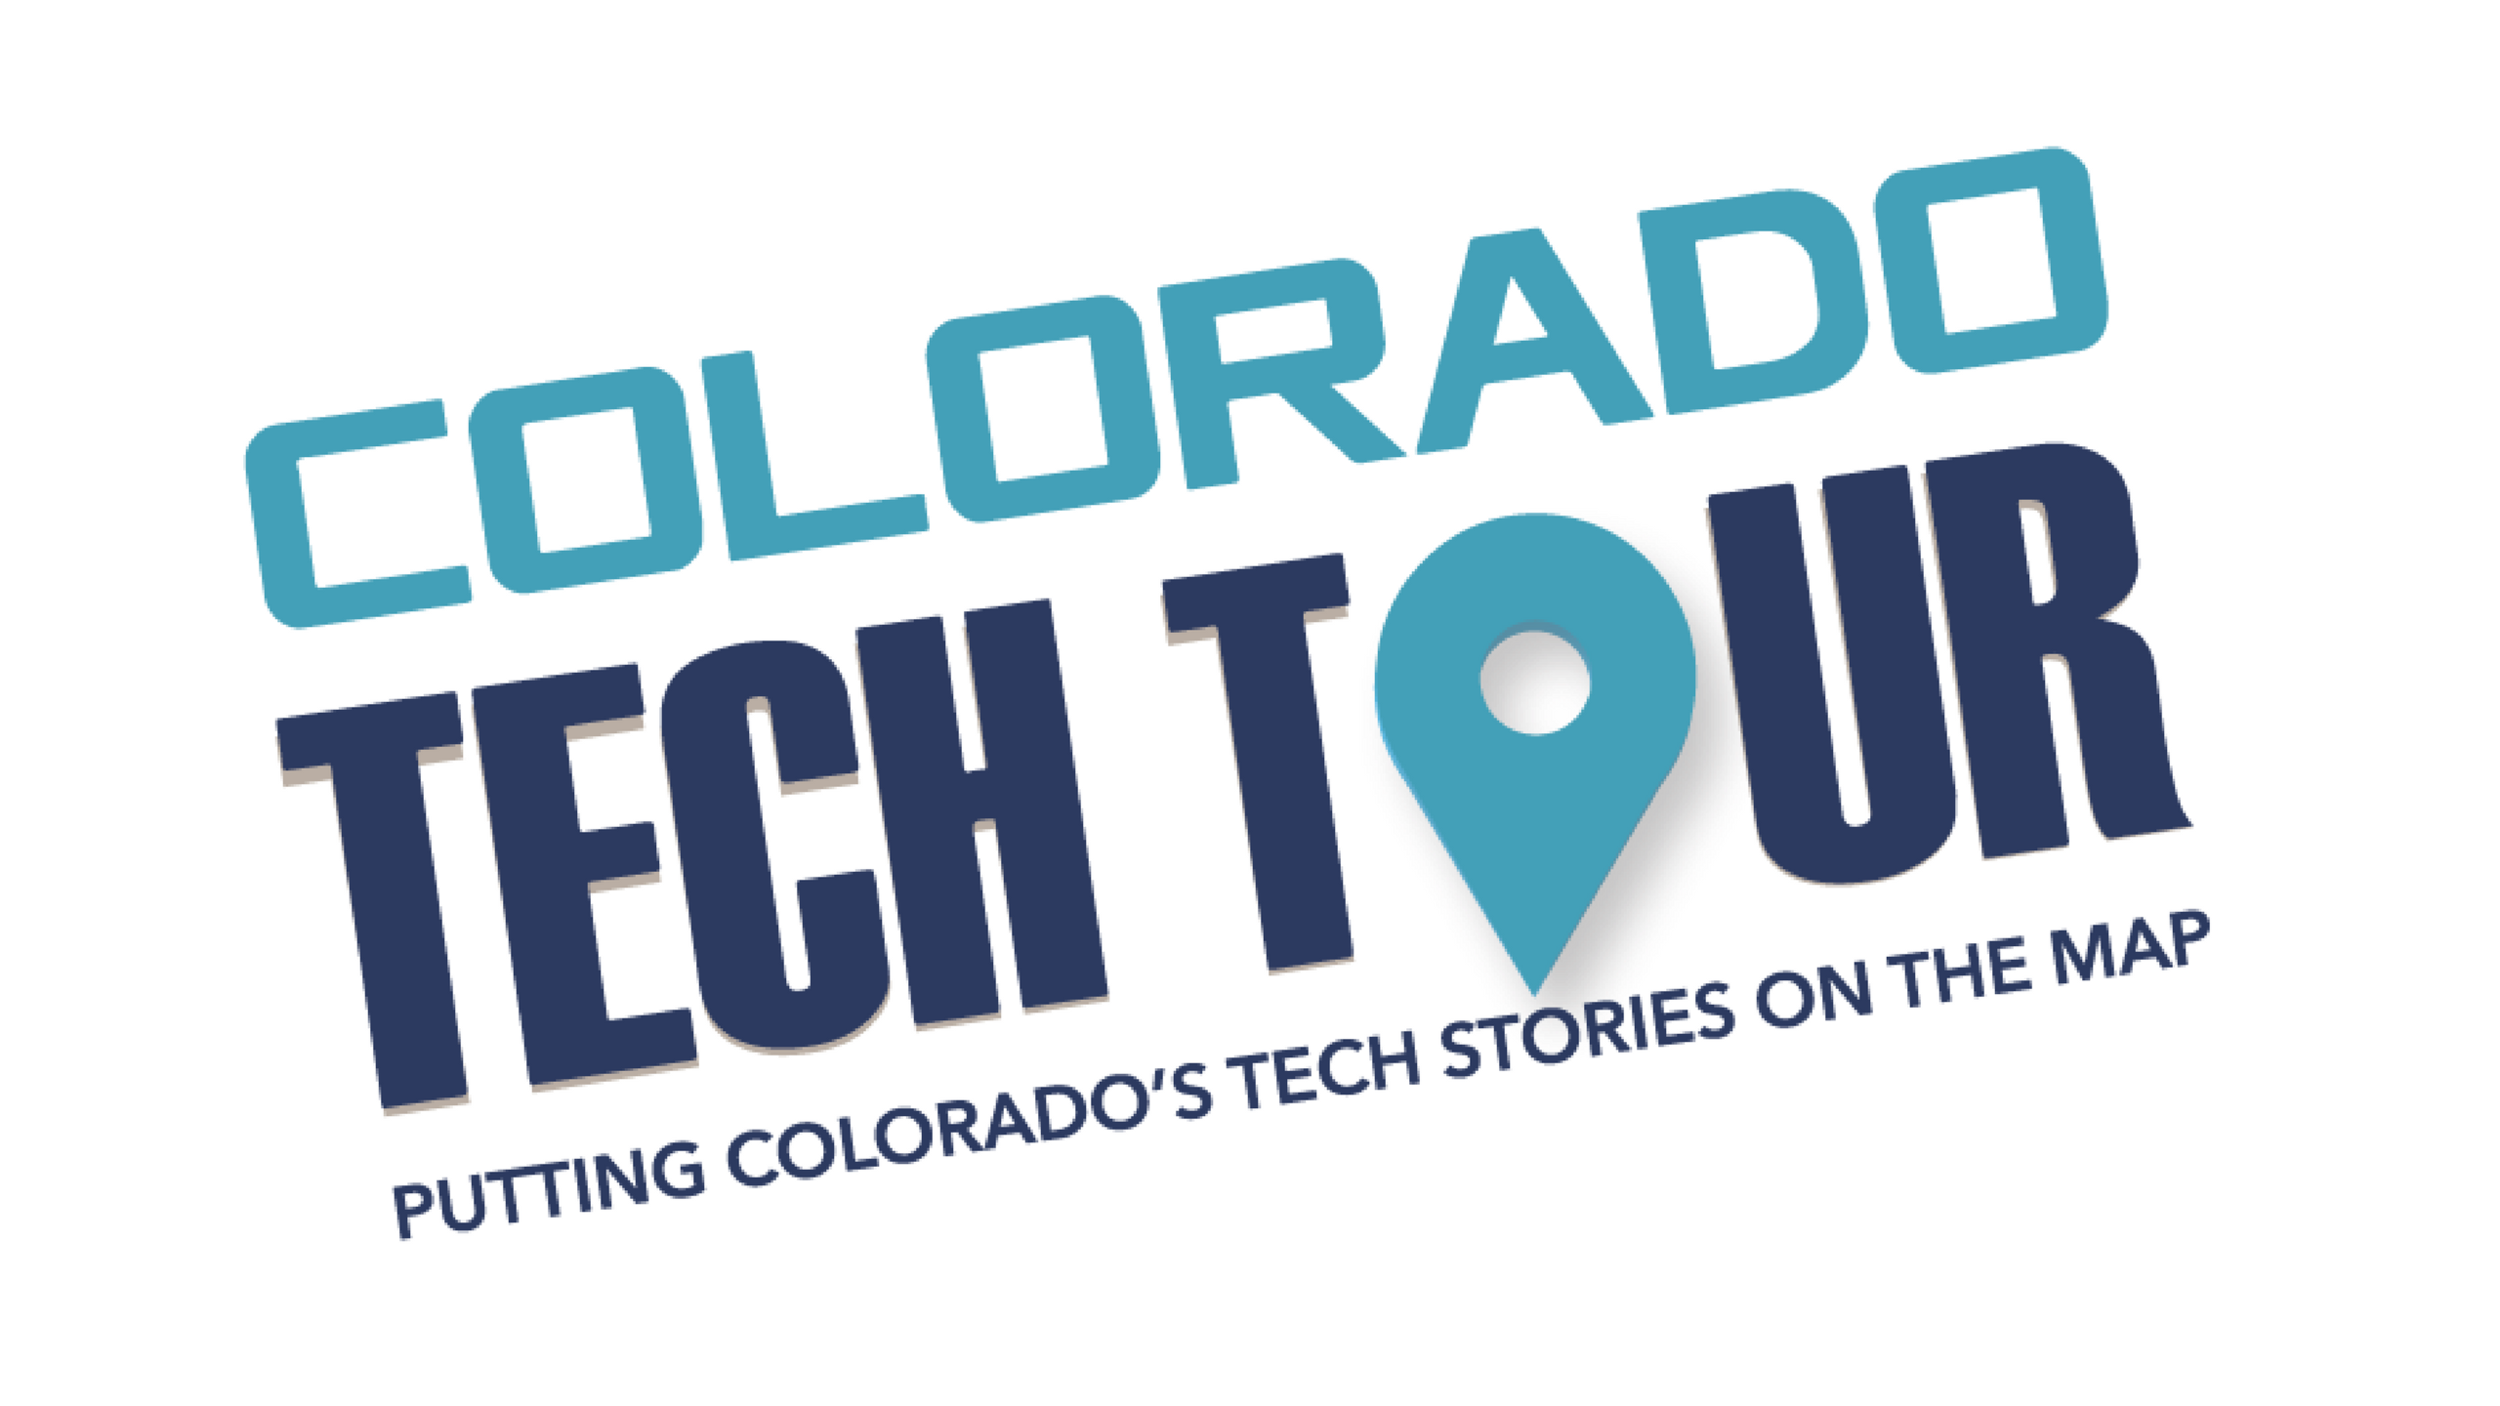 COLORADO TECH TOUR - Seeing the need to connect, all of Colorado, I started and launched the Colorado Tech Tour in Summer 2015 while at the Colorado Technology Association. This week-long tour, connects the companies and stories of innovation that make Colorado, Colorado! The tour is now in it's 4th Year.